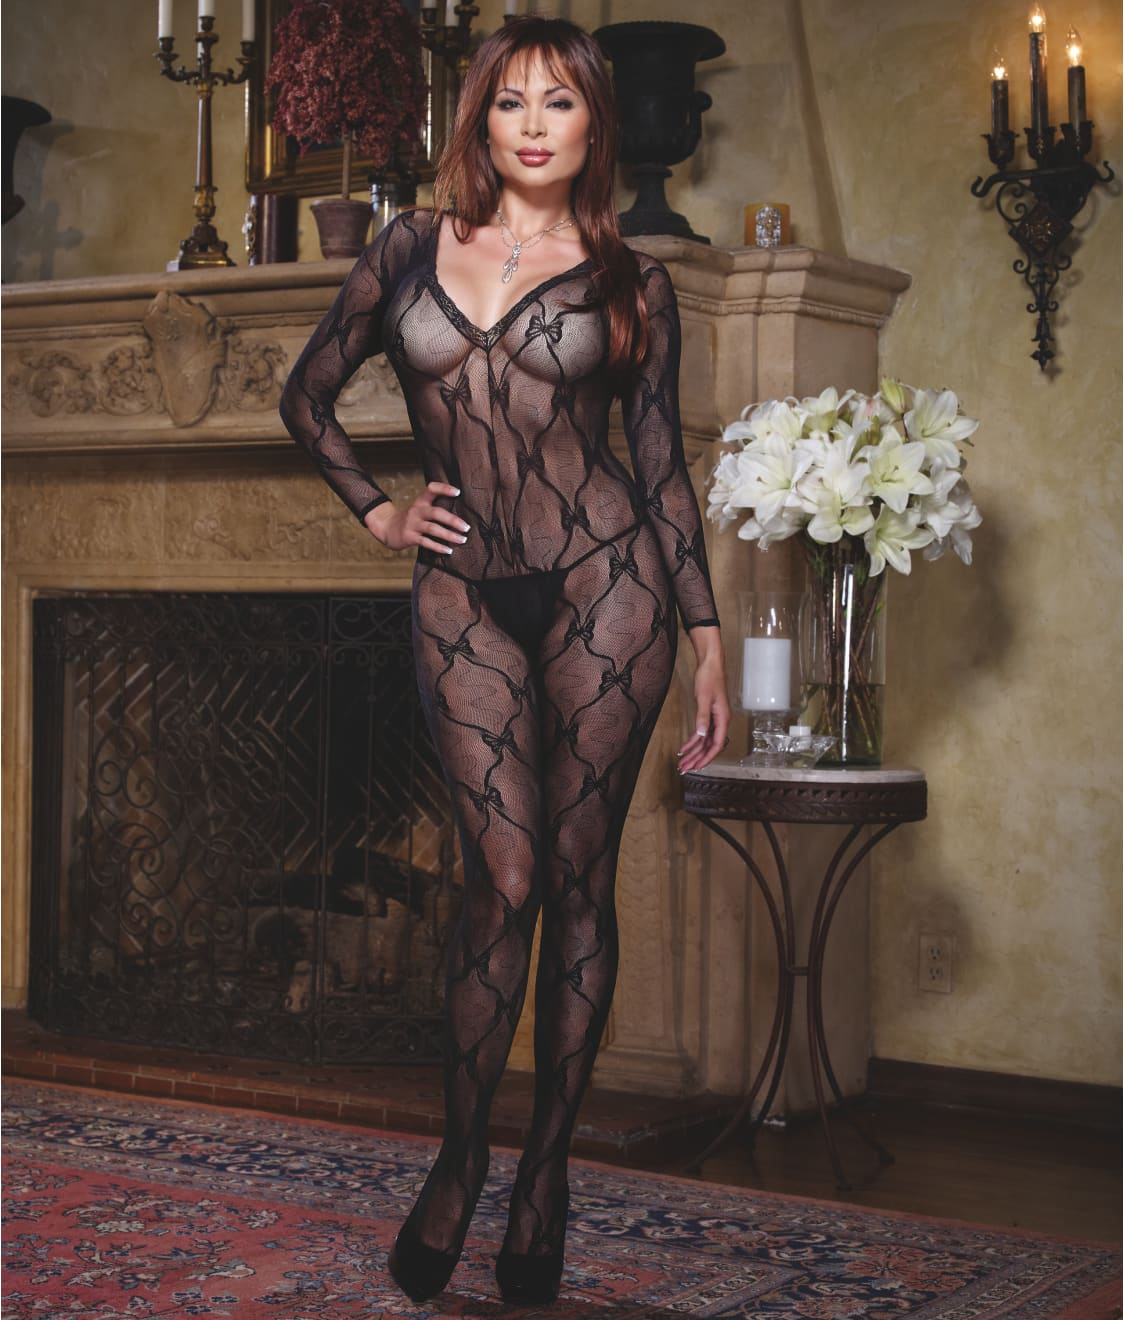 103c594f0 Dreamgirl Plus Size Lace Bodystocking